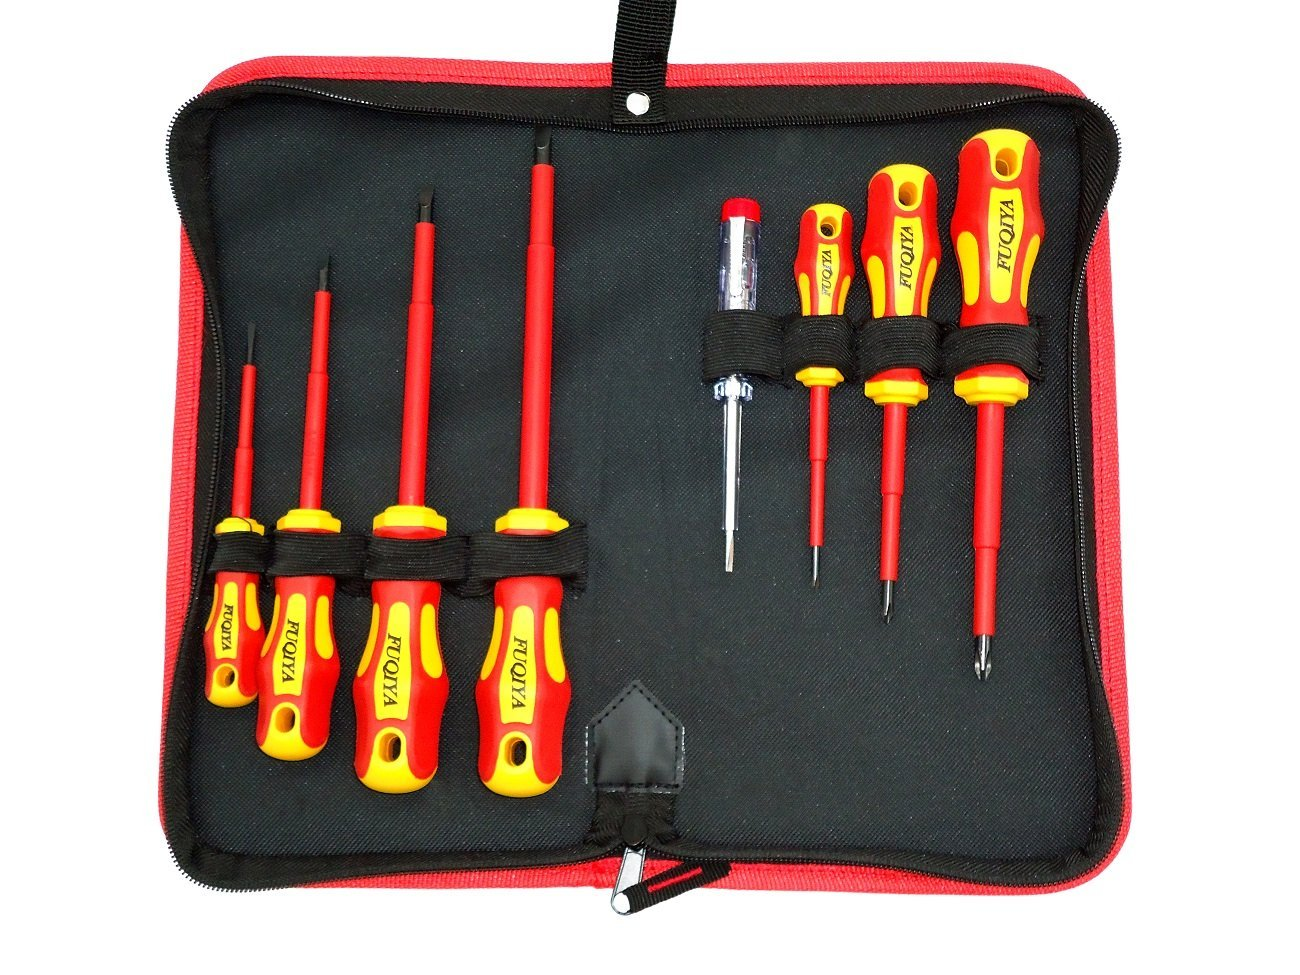 Cheap Vde Screwdriver Find Deals On Line At Alibabacom Wera Kraftform Voltage Tester Circuit Testers Get Quotations Fuqiya 02008 8 Piece 1000v Insulated Set